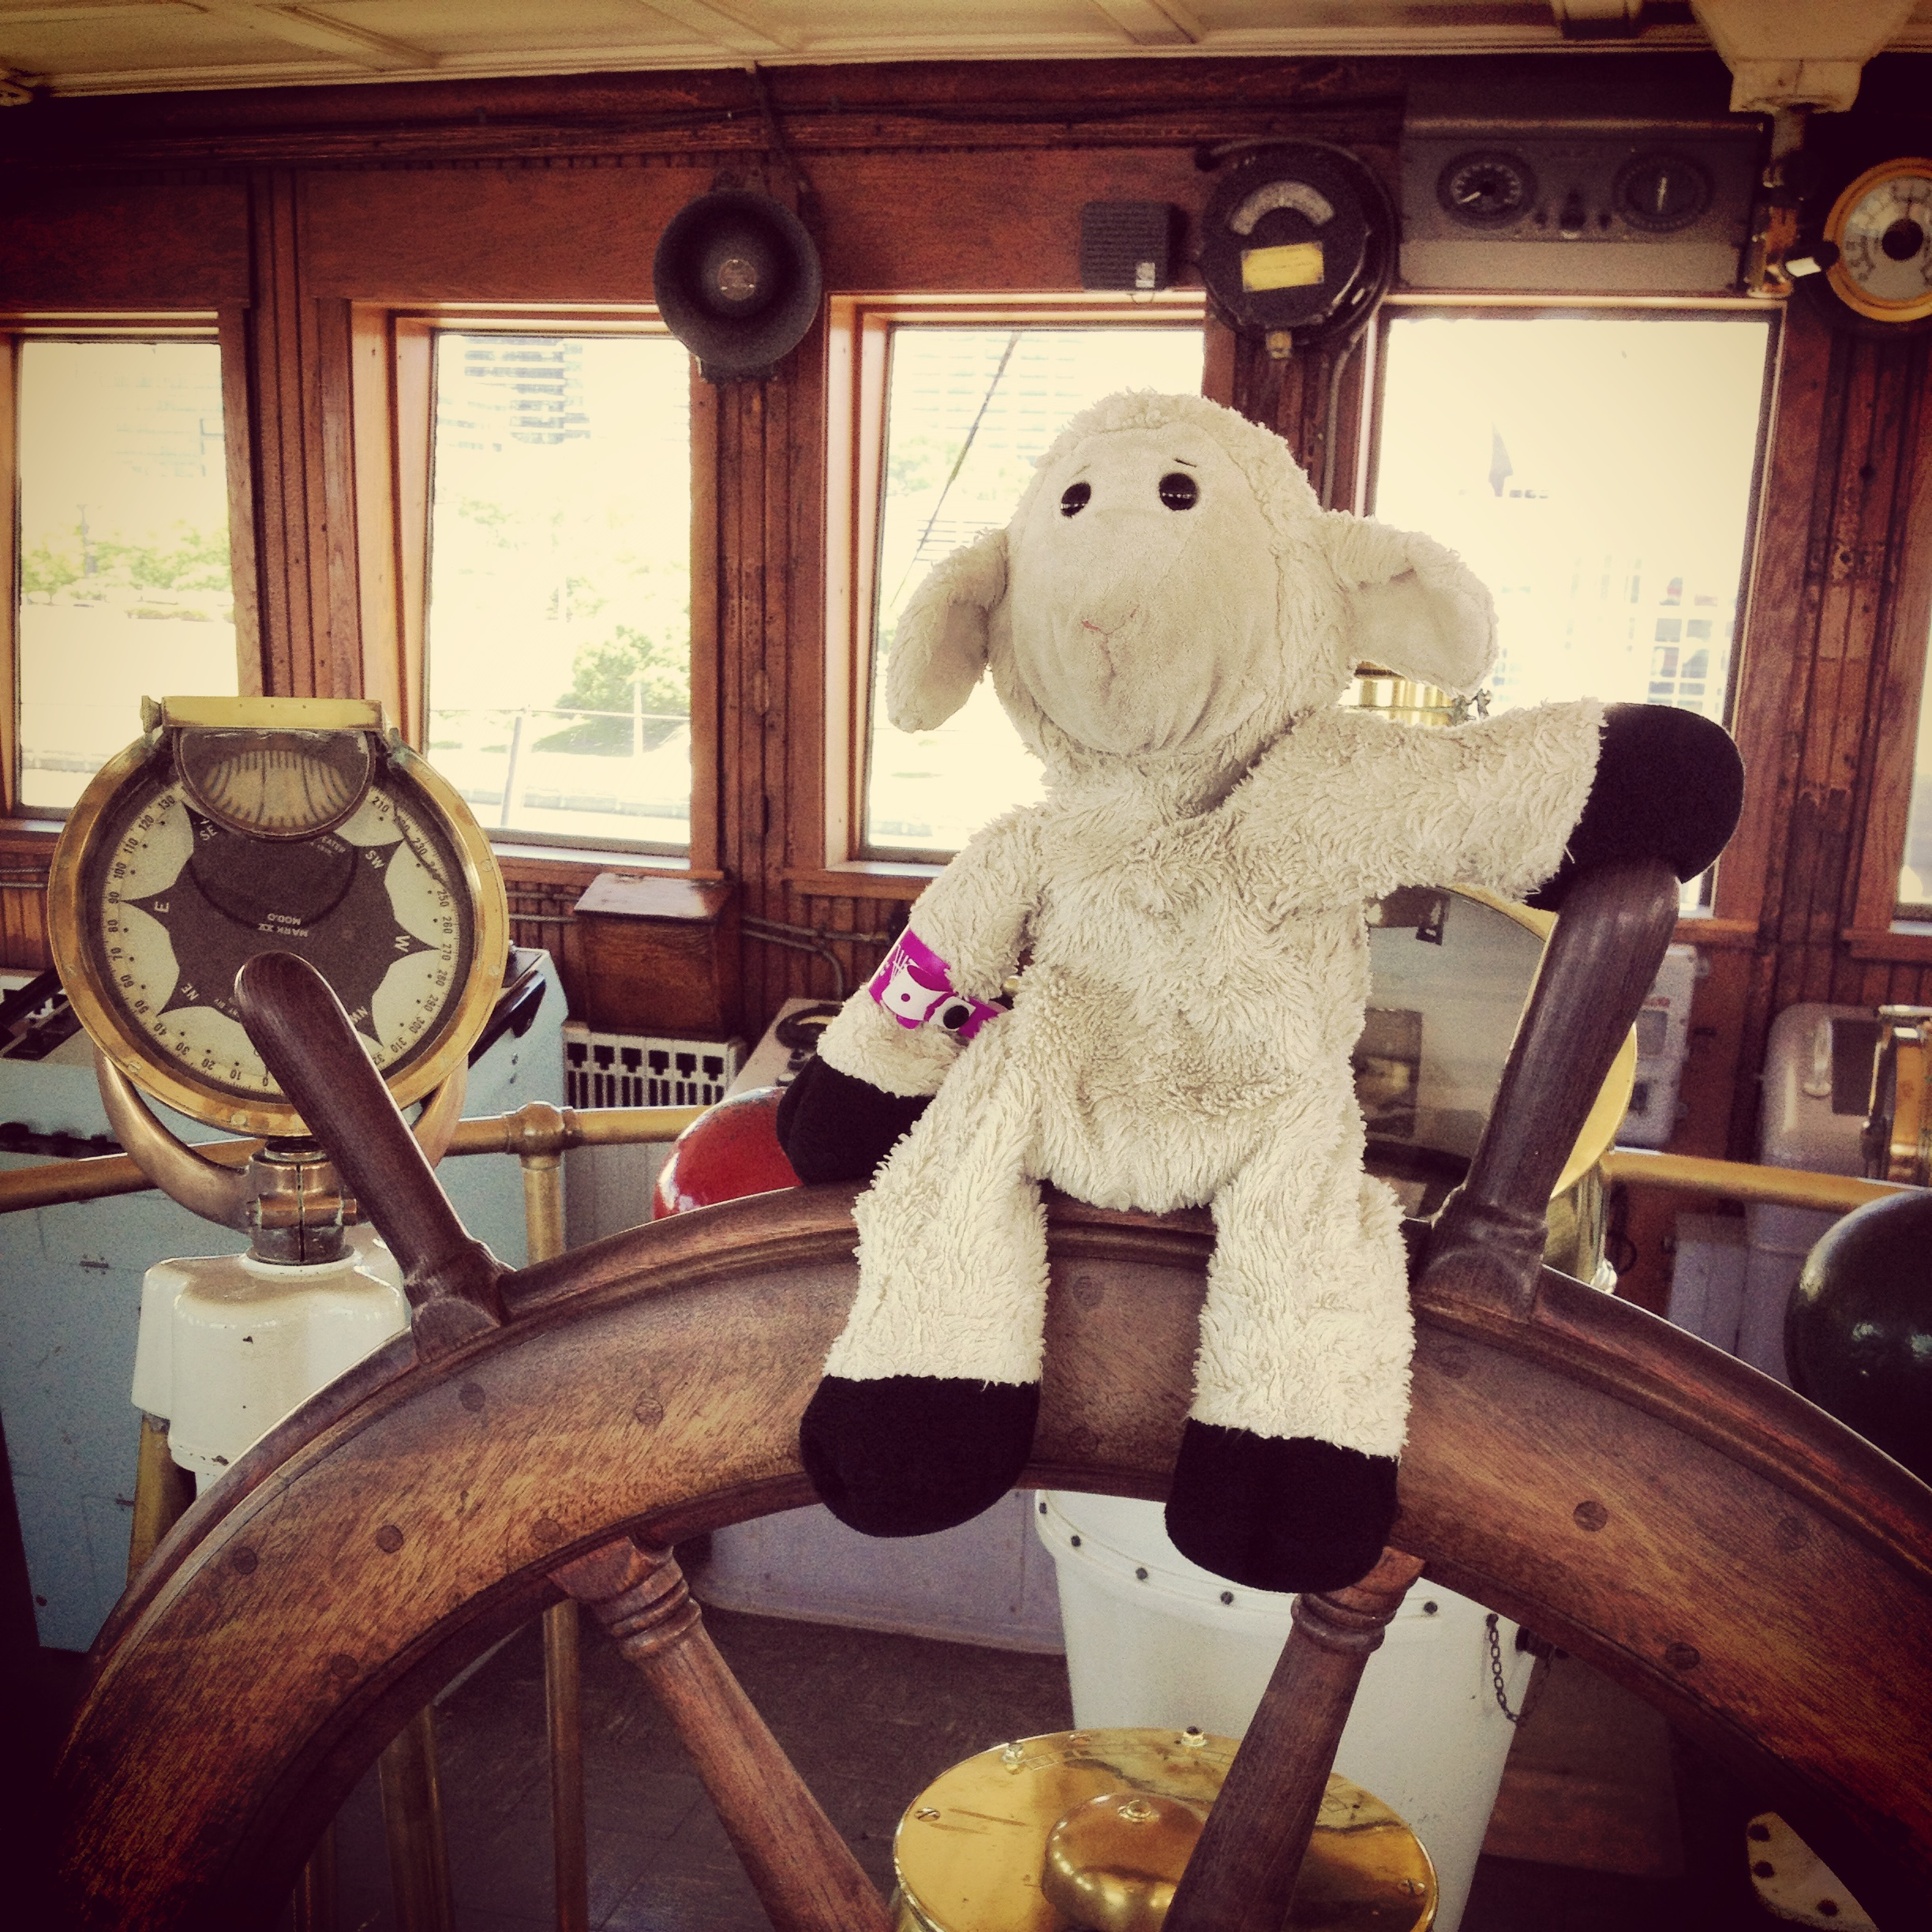 Captain Sheep of the USS William G Mather- Full speed ahead, skipper!